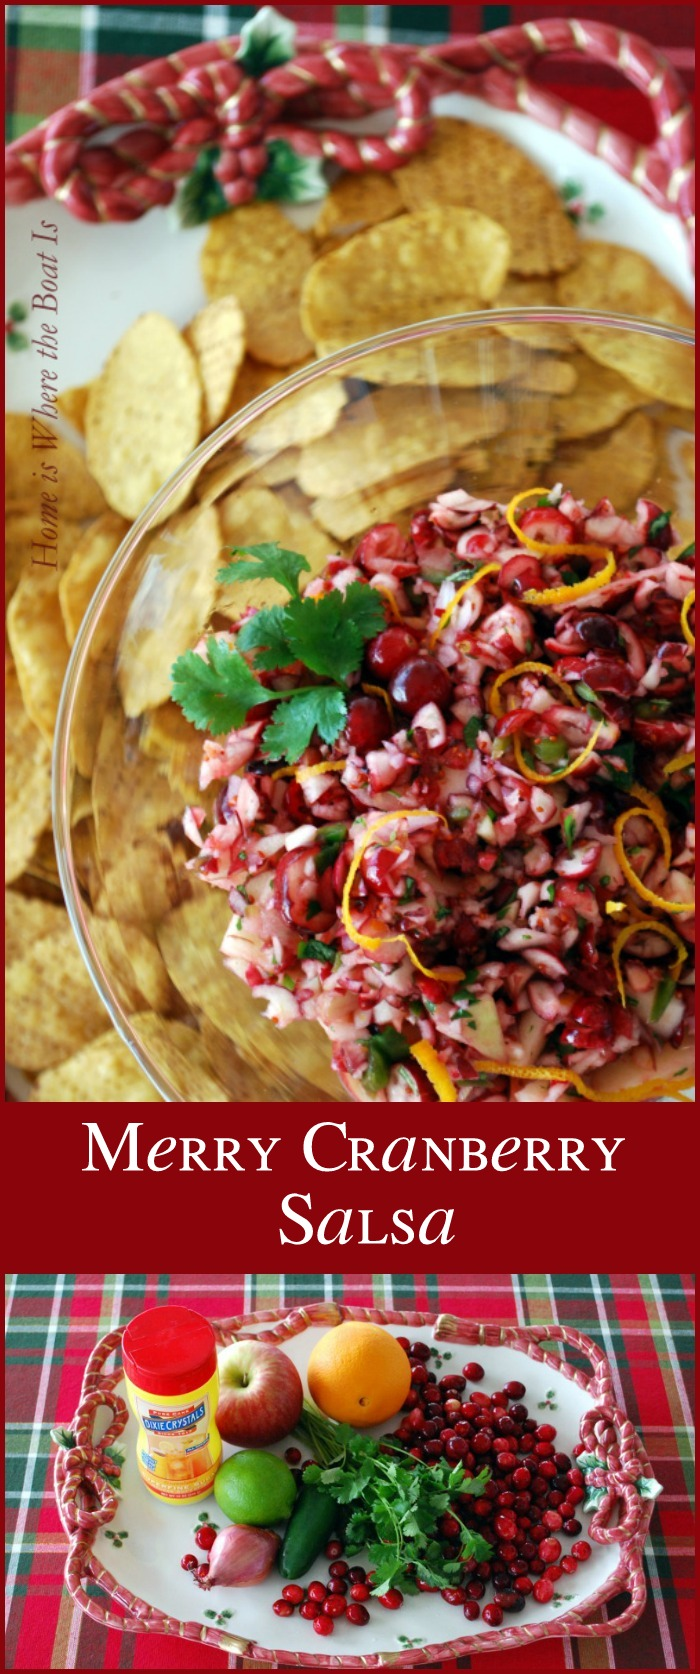 Merry Cranberry Salsa! A light, flavorful, and healthy appetizer for the holidays that comes together in 10 minutes!